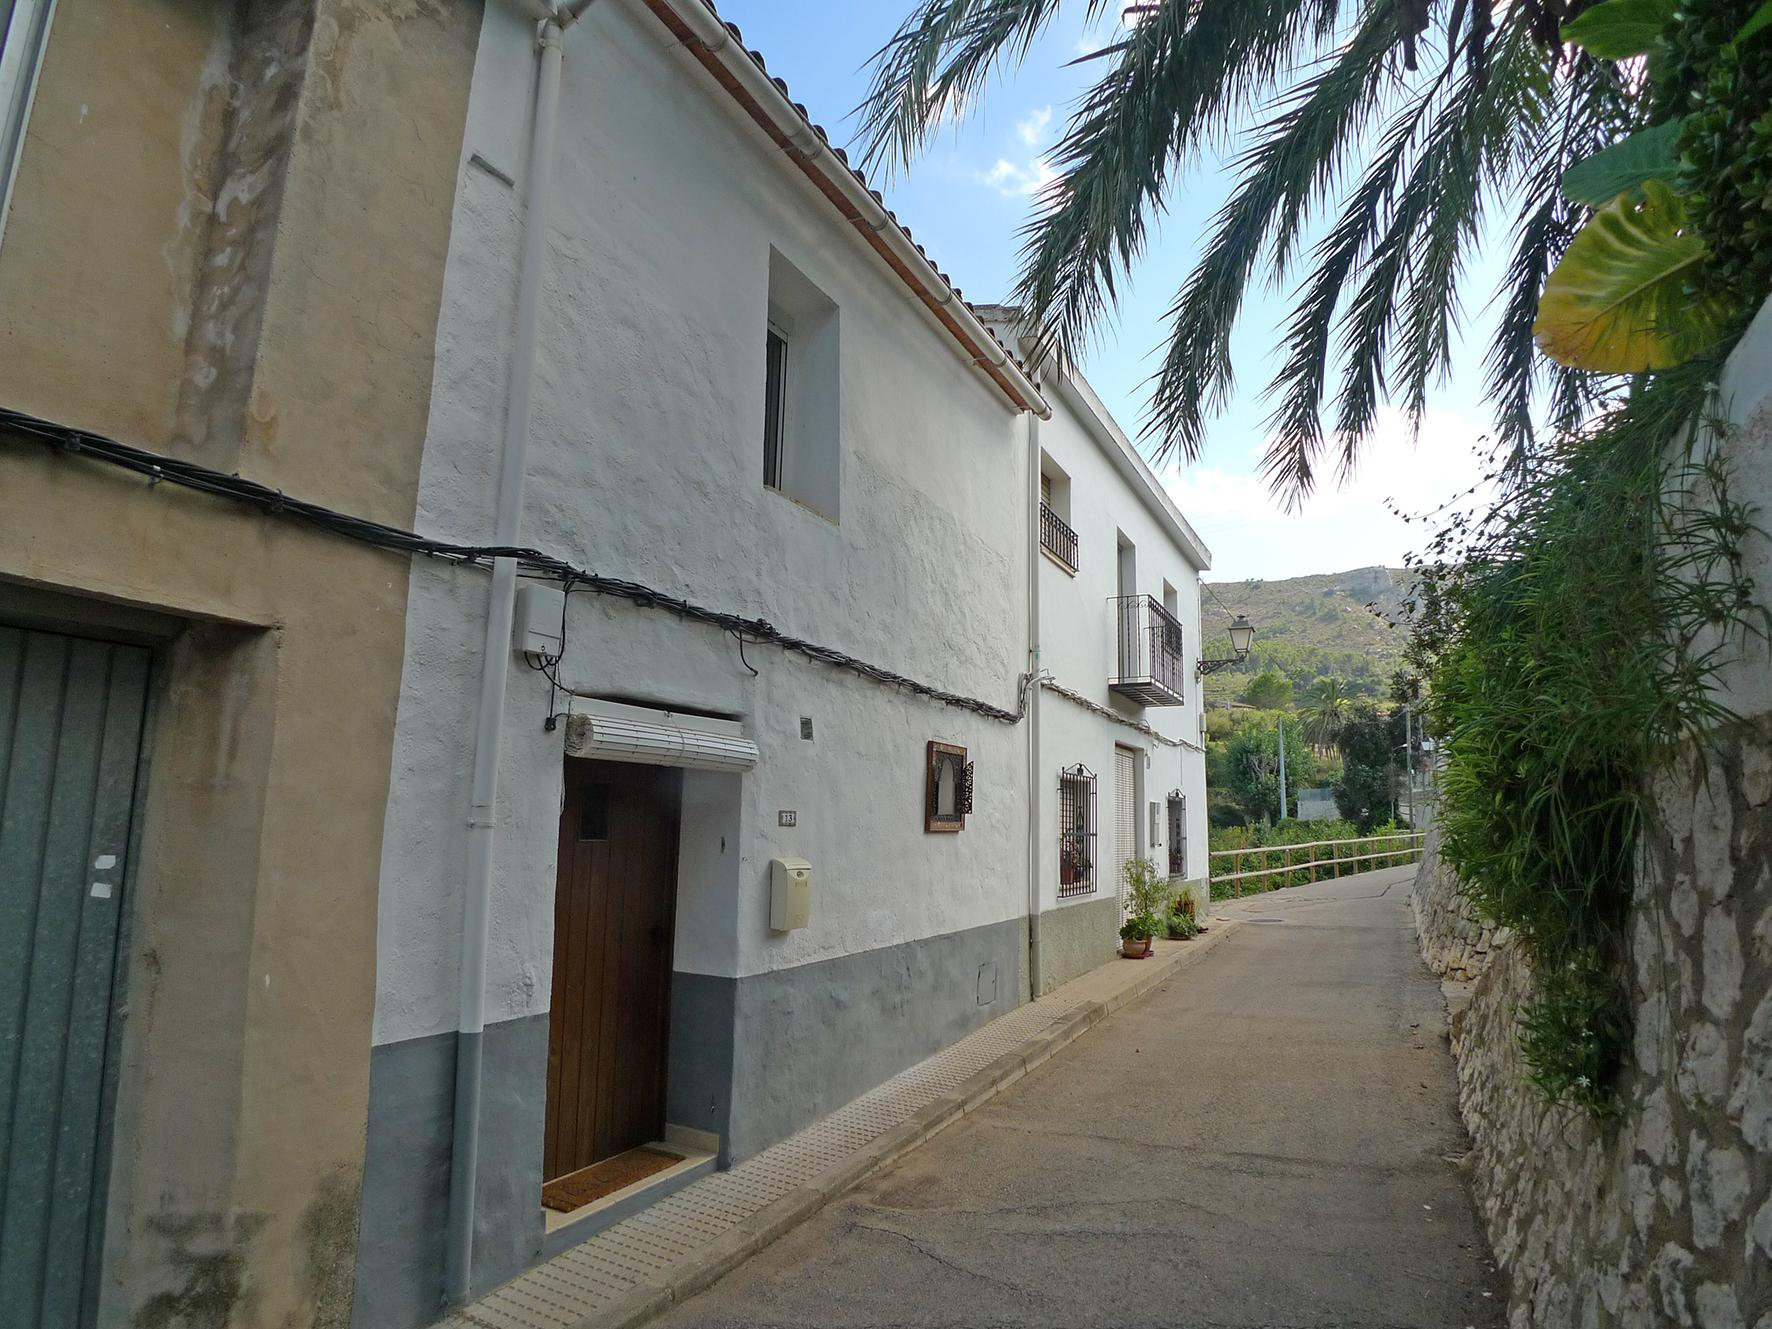 2 Bedroom Town house in Jalon